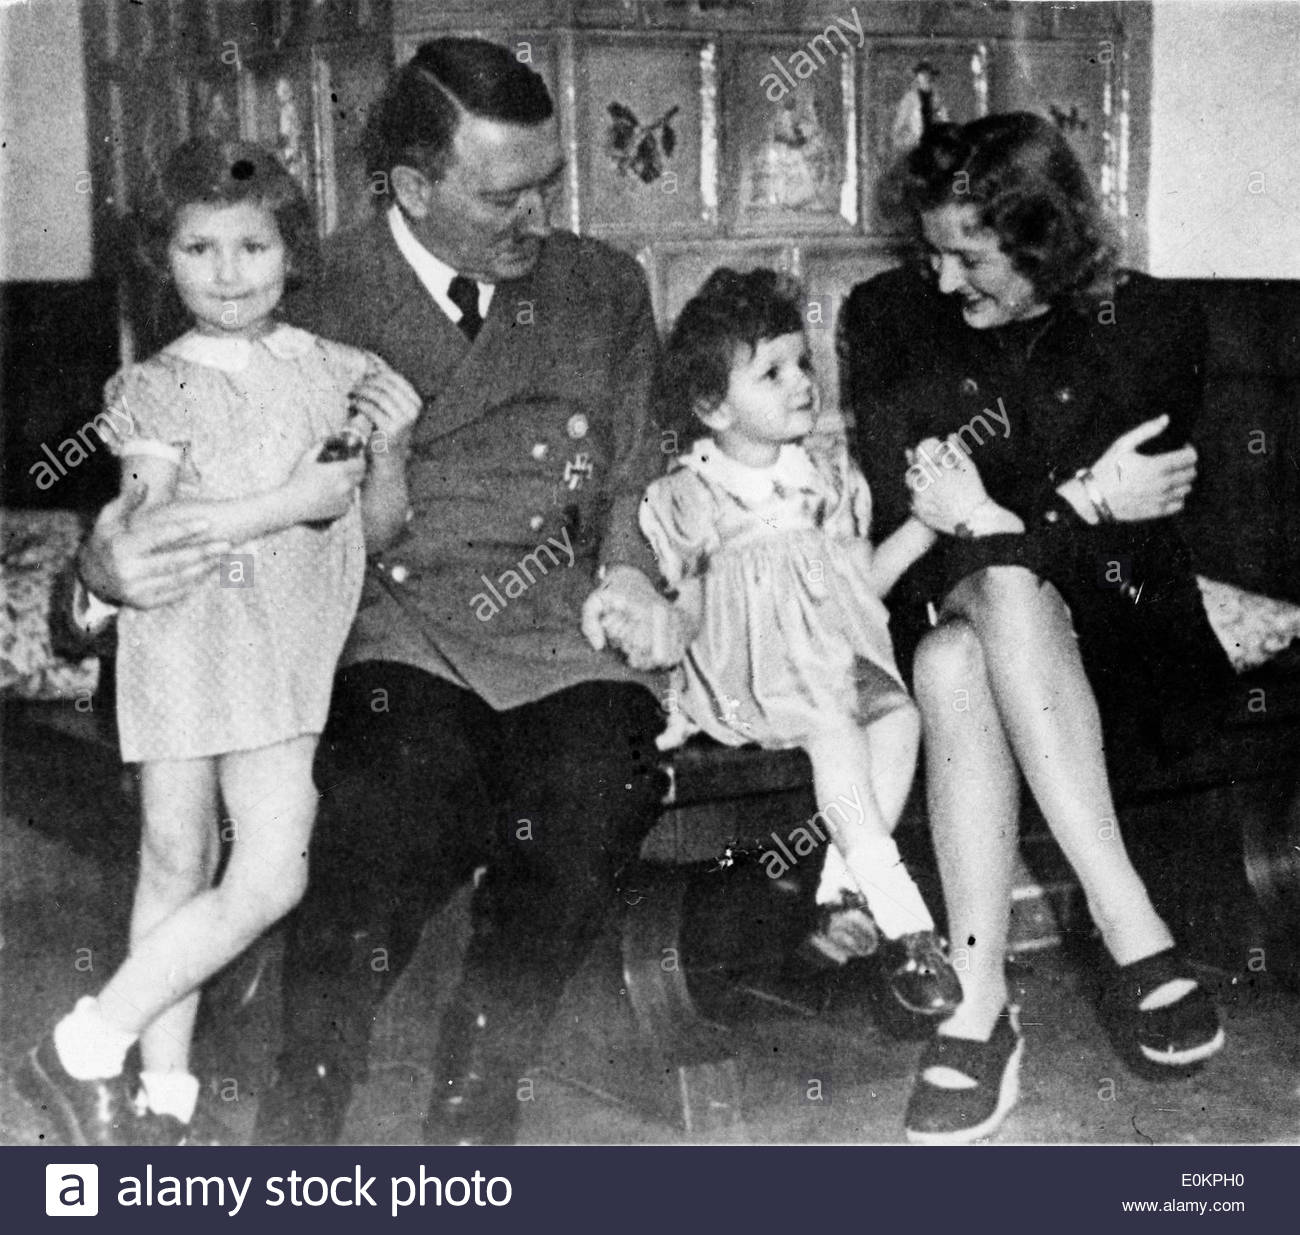 Adolf Hitler and his mistress Eva Braun visit with two ...